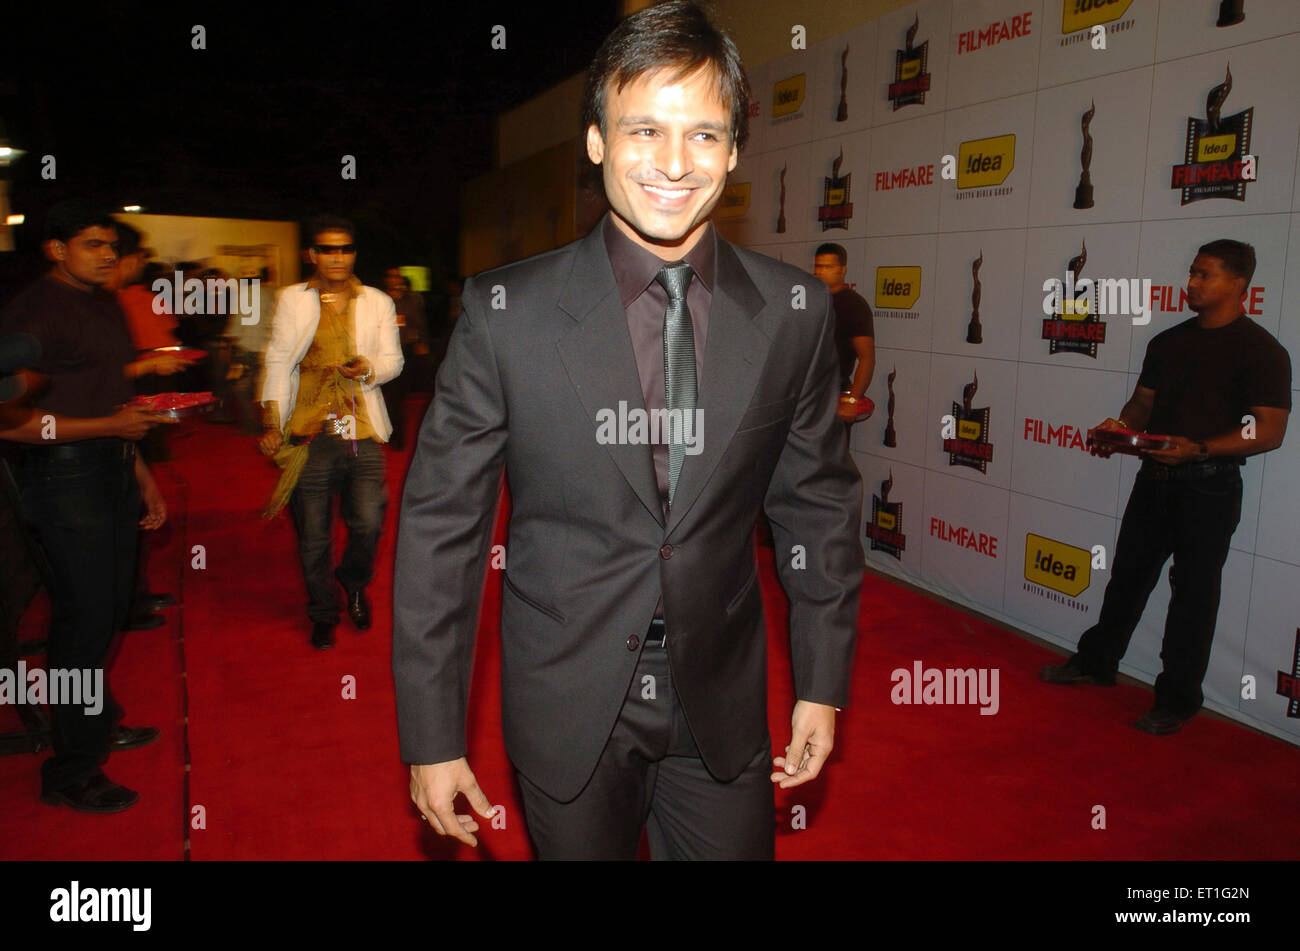 Actor vivek oberoi ; India NO MR Stock Photo